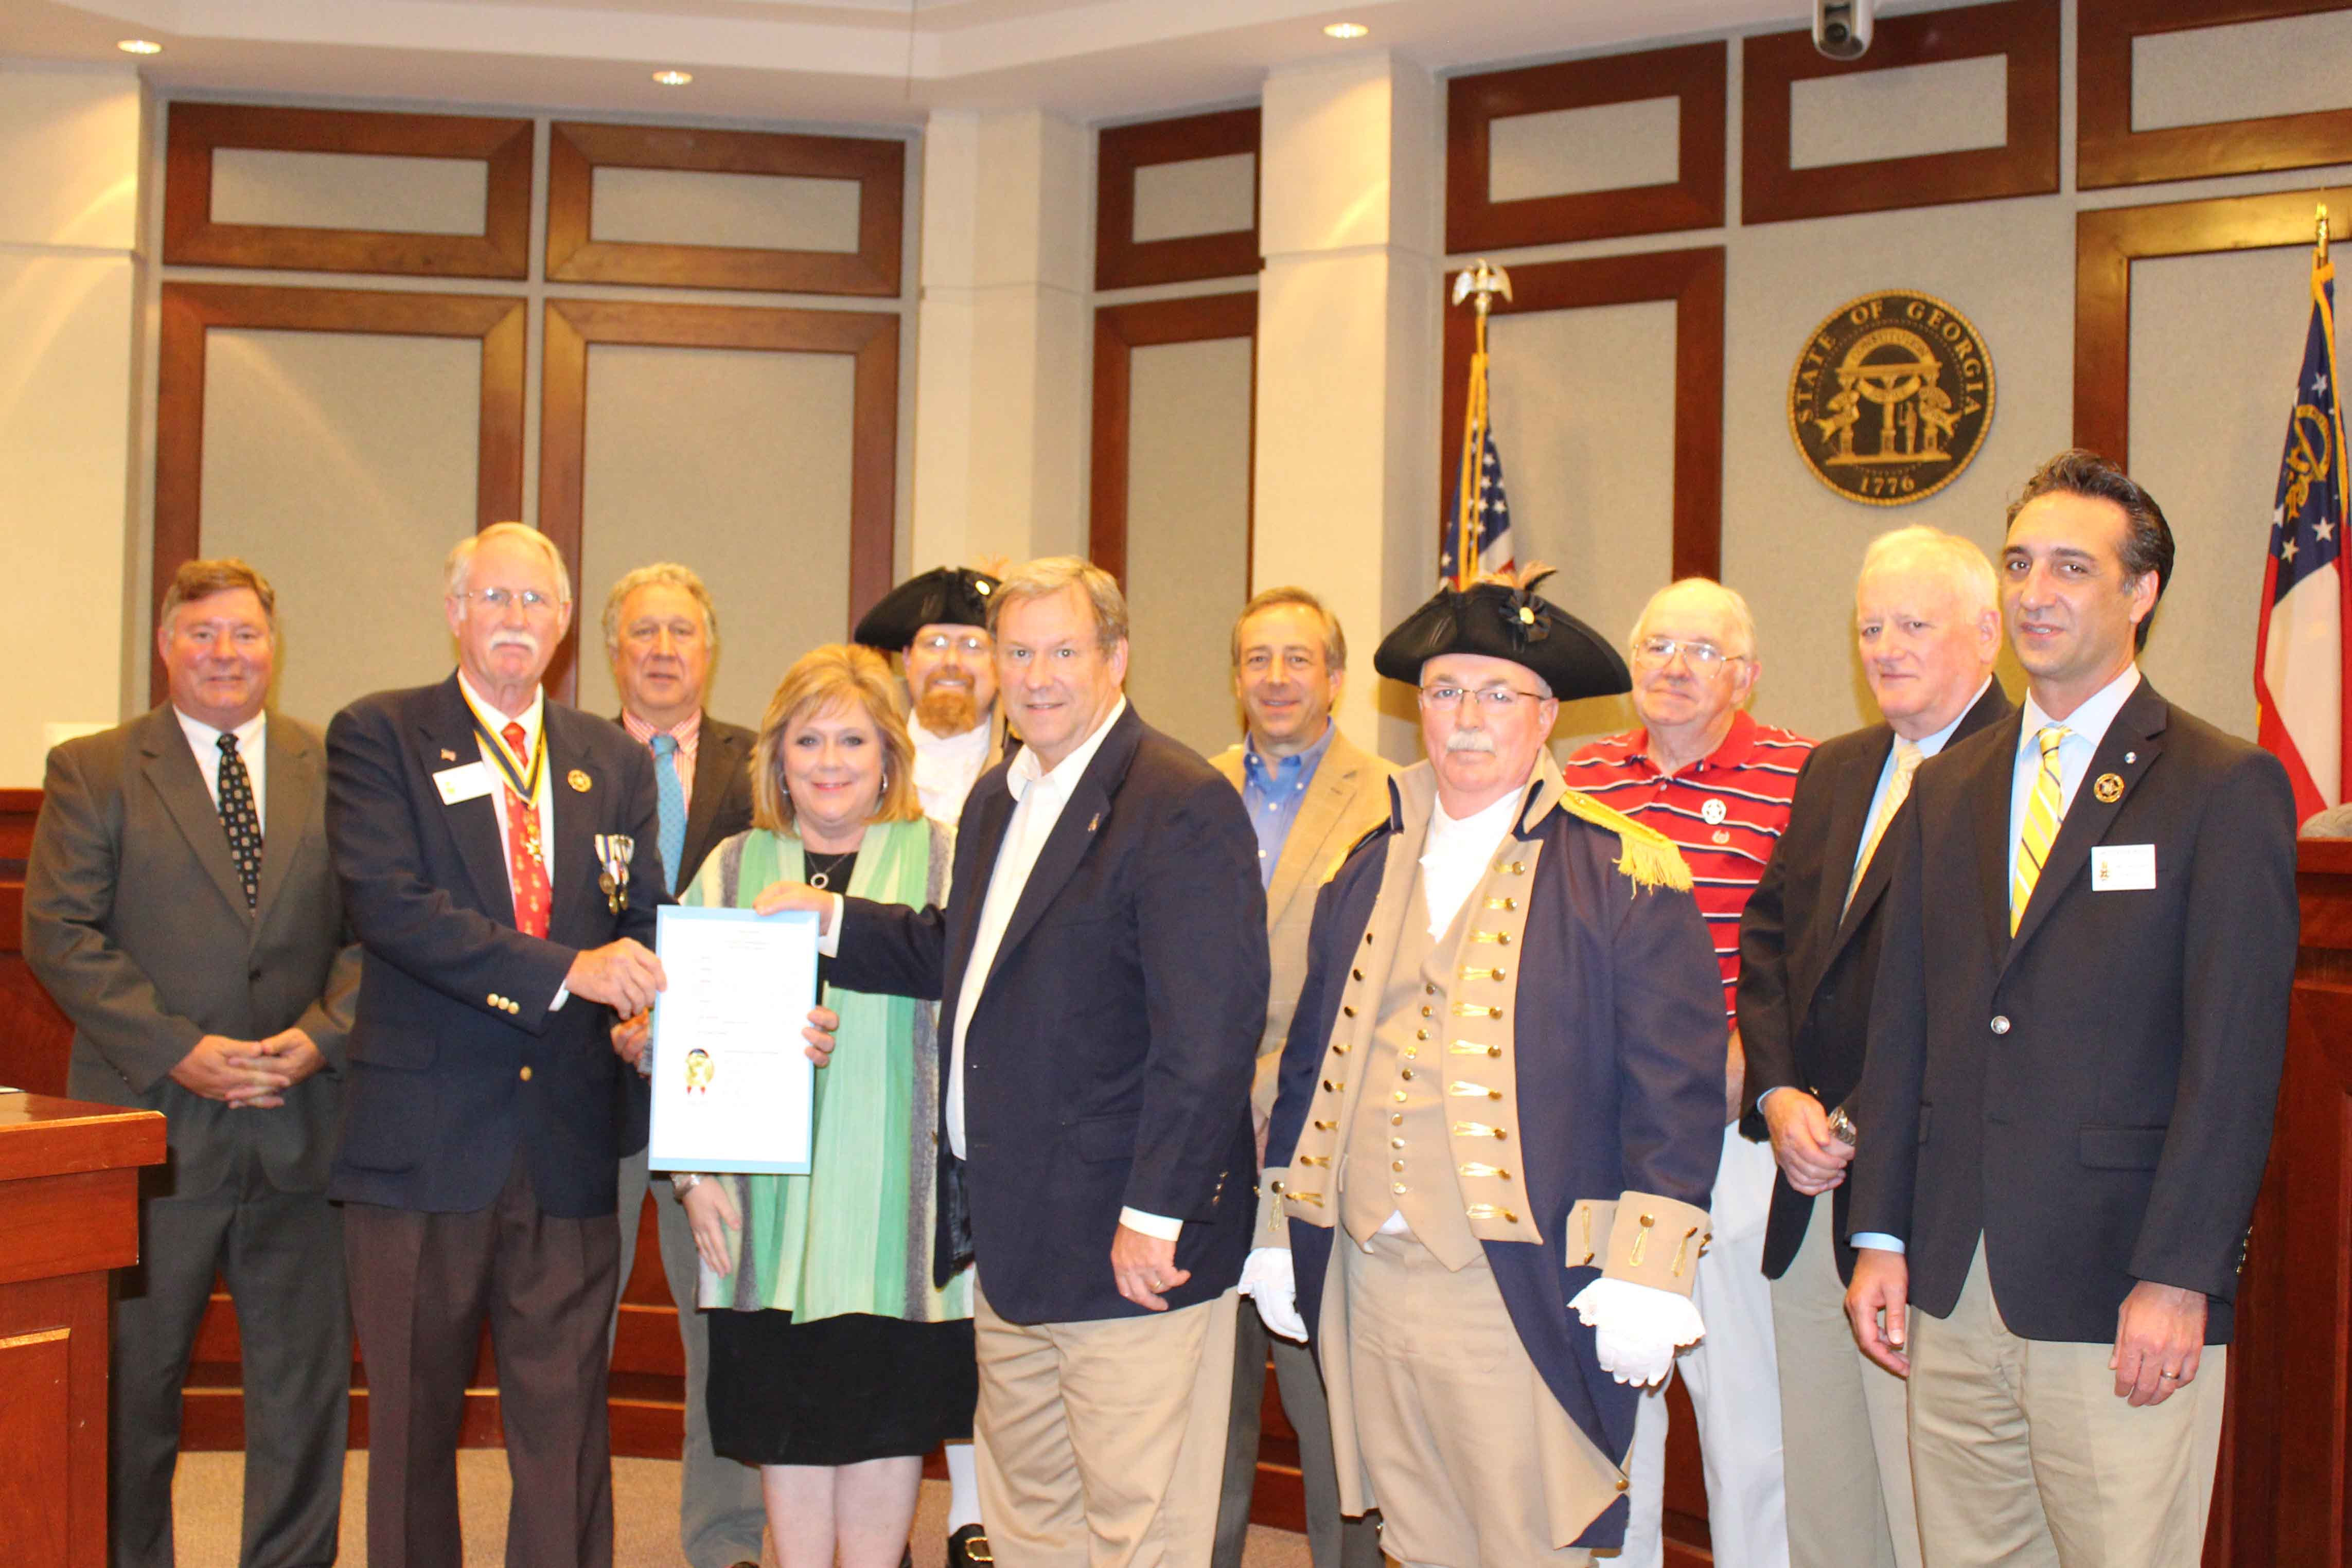 June 14 Recognized as National Flag Day in Forsyth